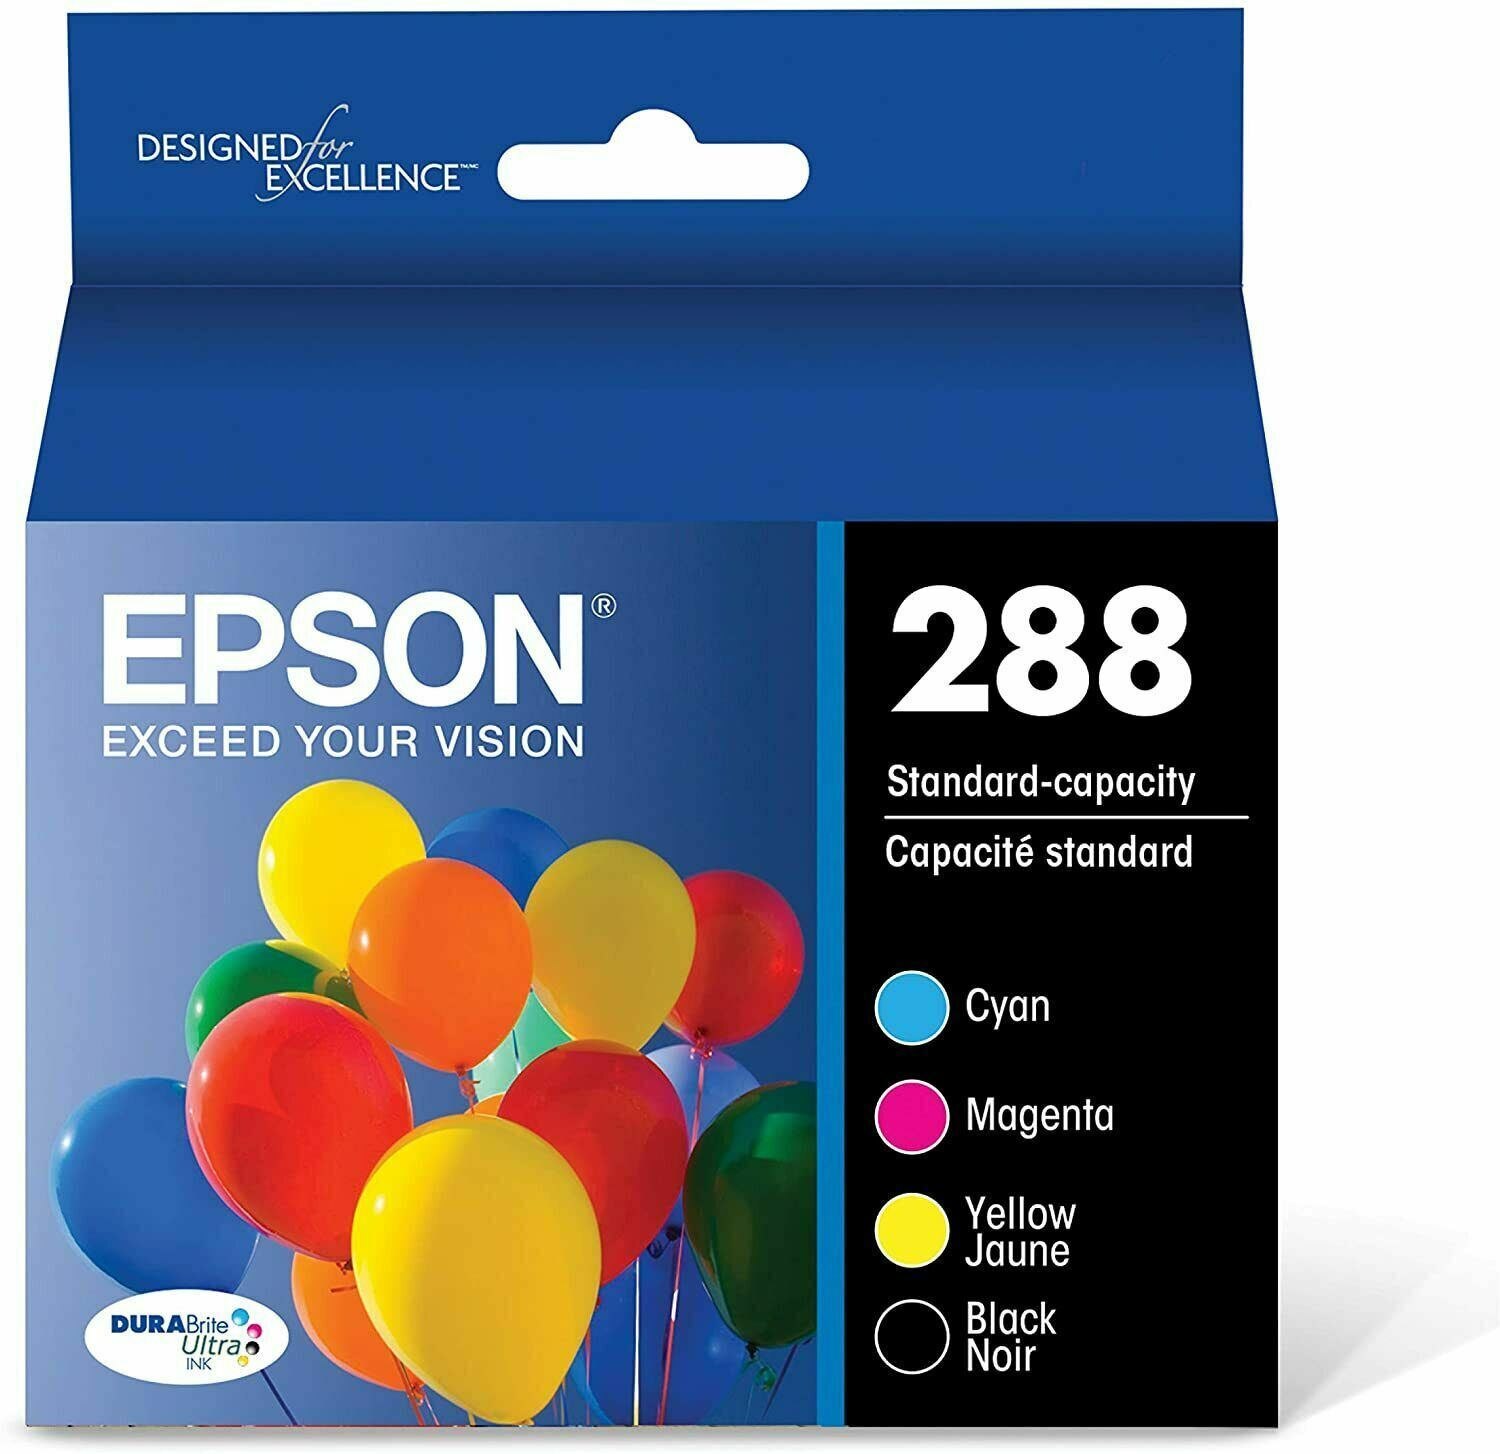 Epson 288 Black, Cyan, Magenta, Yellow Ink Cartridges 4 Pack